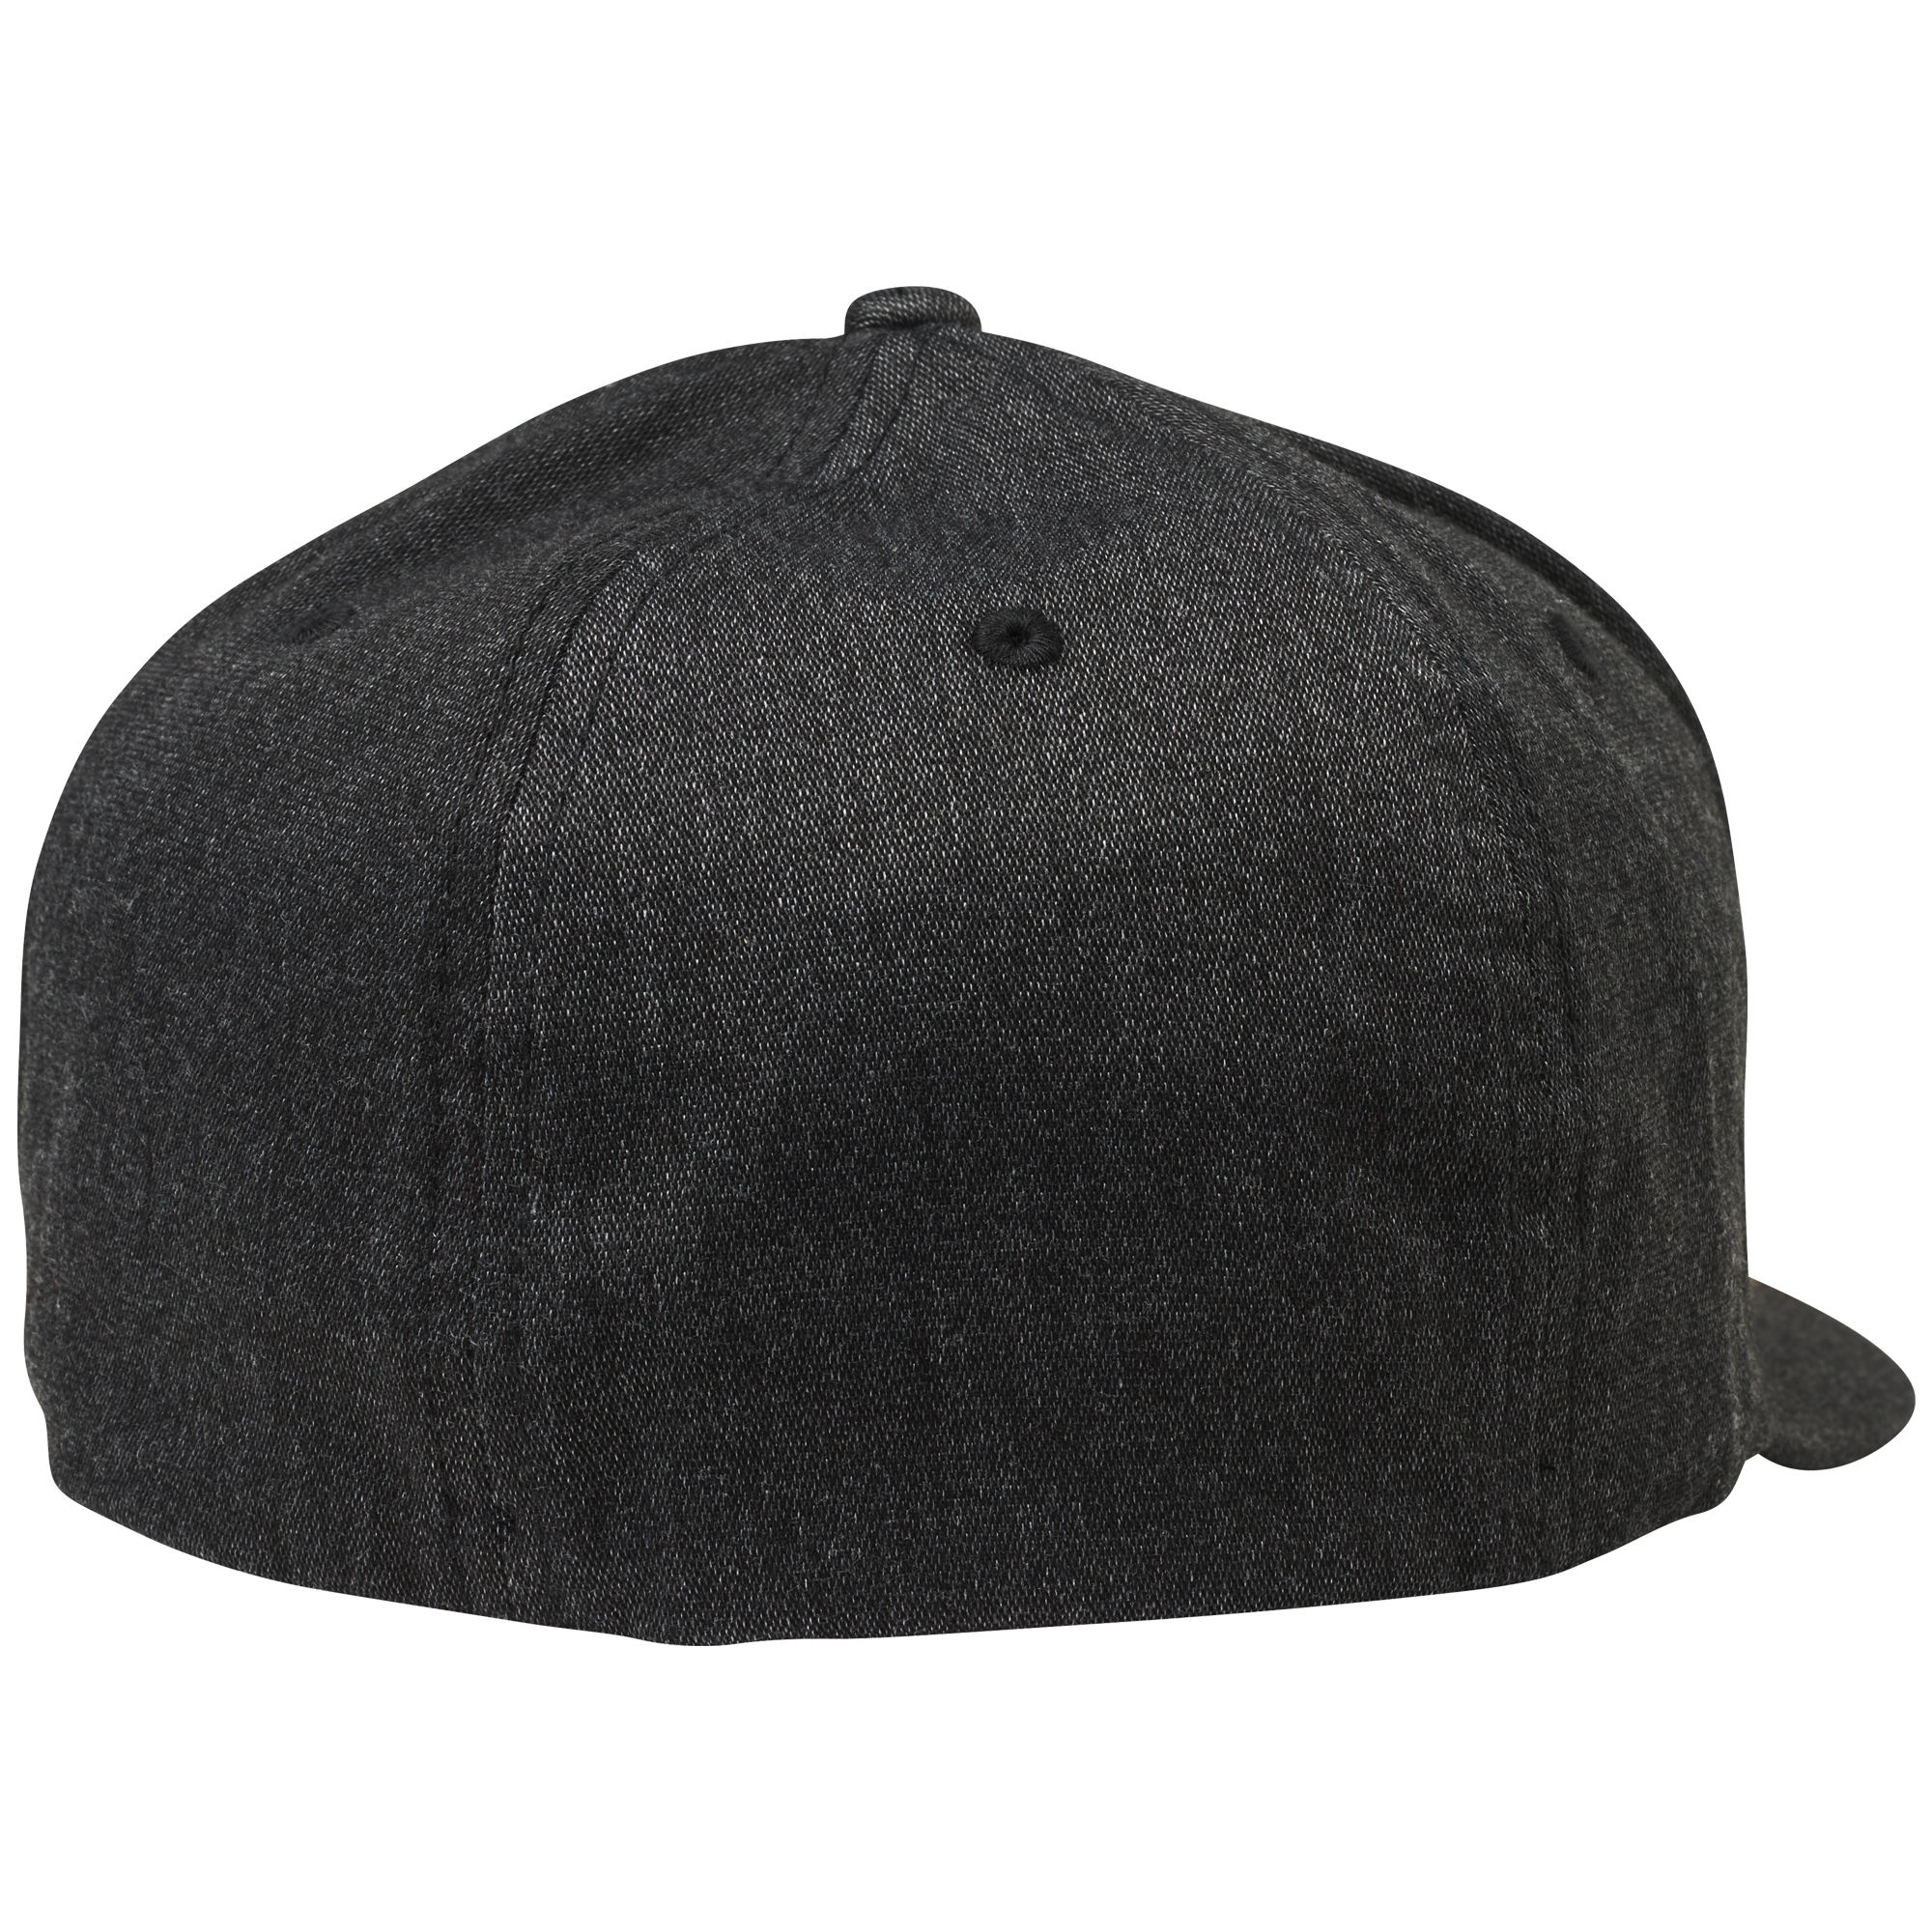 Fox-Racing-Mens-Clouded-Flexfit-Hat-Cap-Stretch-to-fit-Design-Curved-Bill thumbnail 5